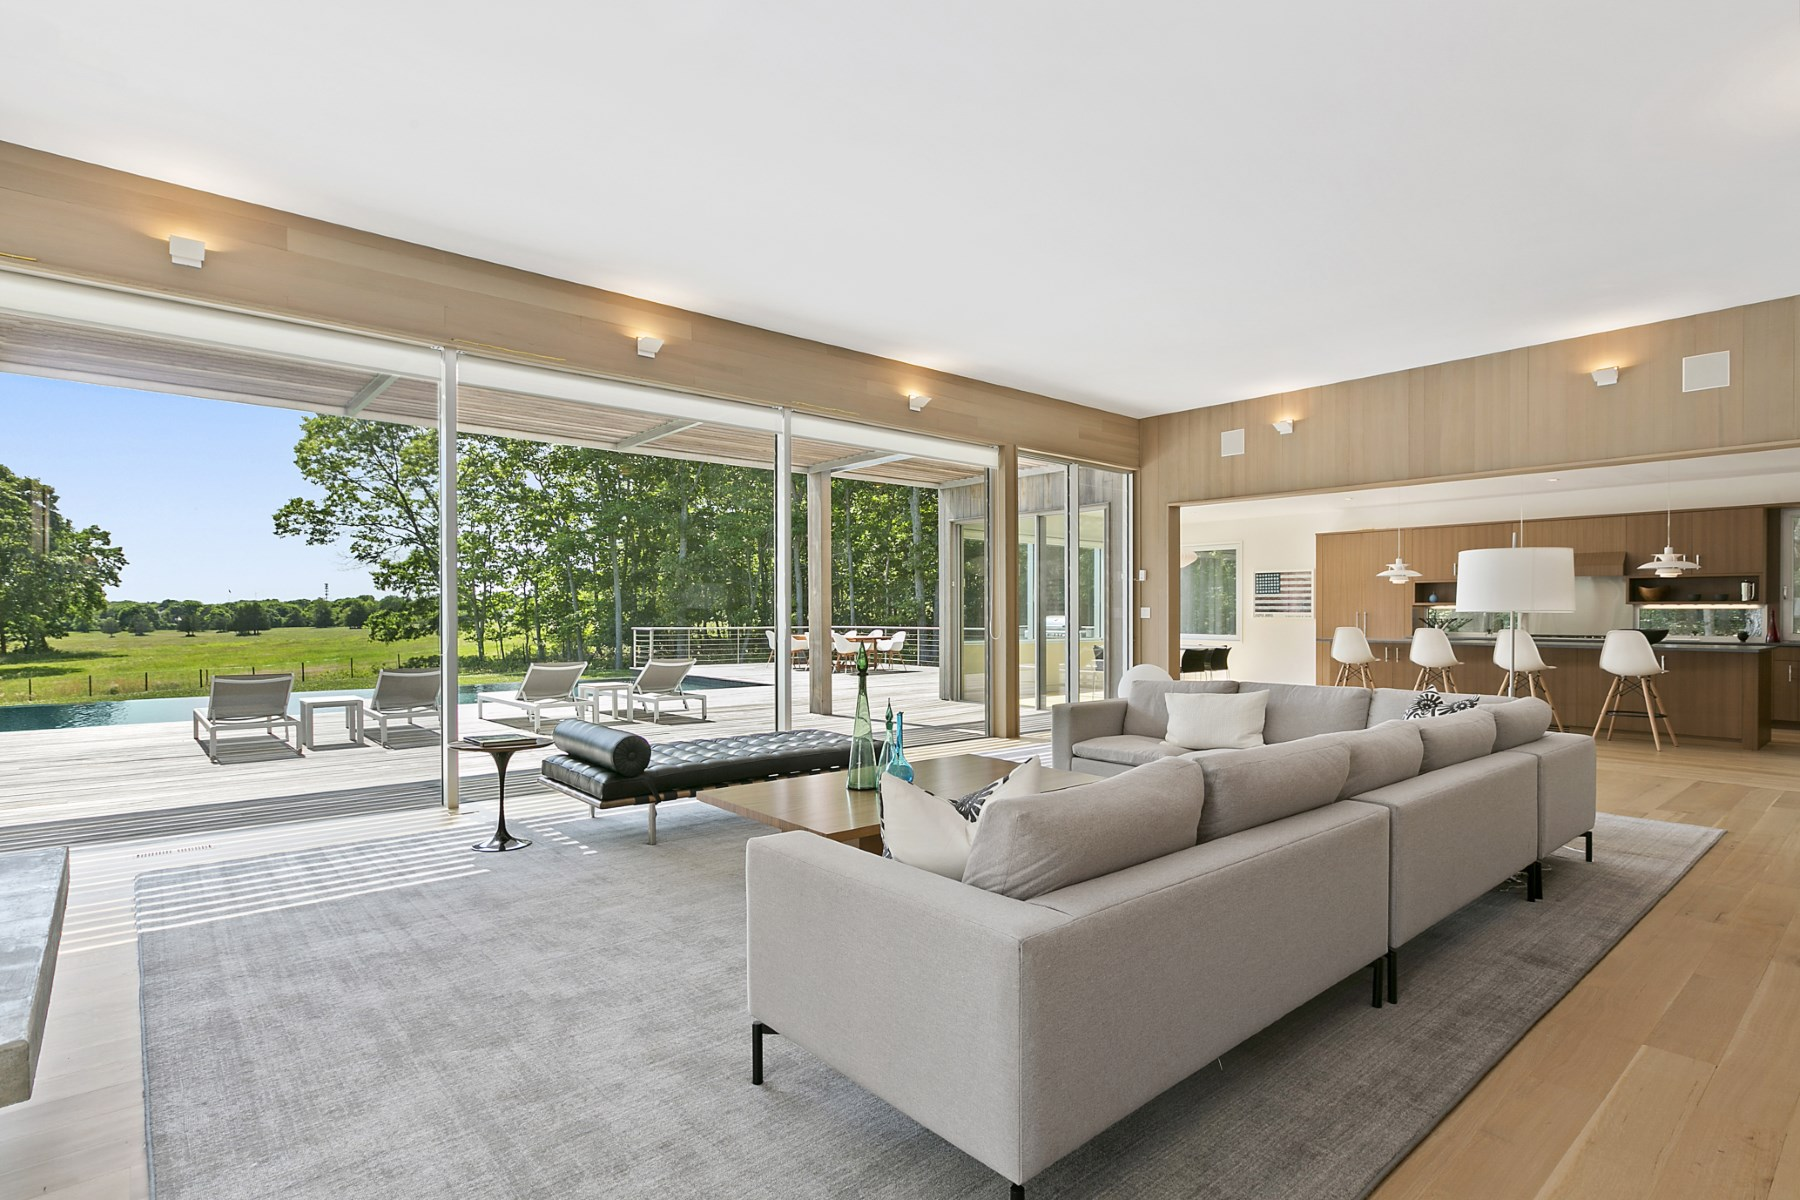 Single Family Home for Sale at New Modern, Overlooking Open Fields 22 Scrimshaw Lane, Amagansett, New York, 11930 United States